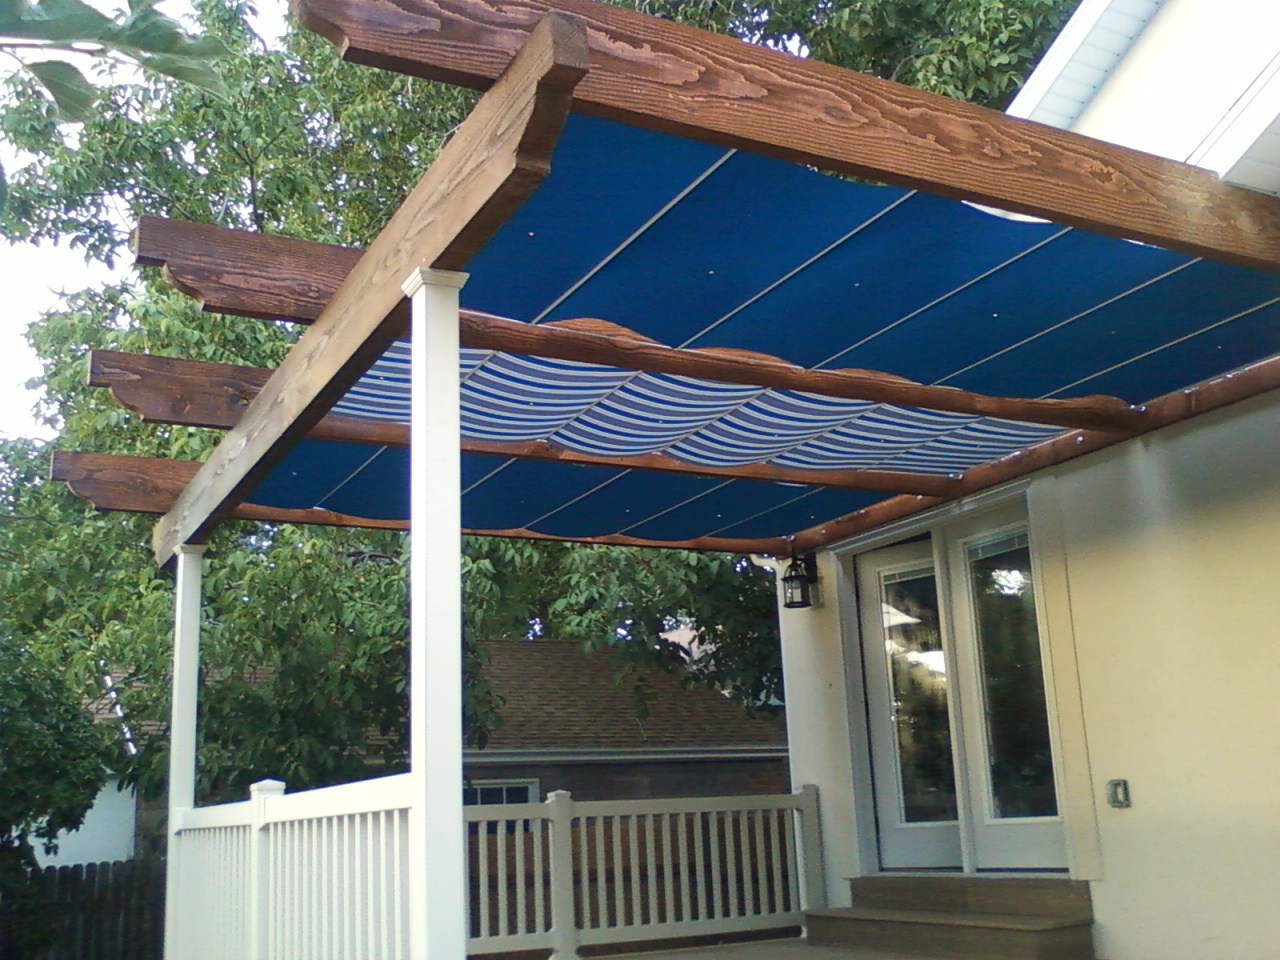 Retractable canopy for pergola - Retractable Canopy For Pergola 38